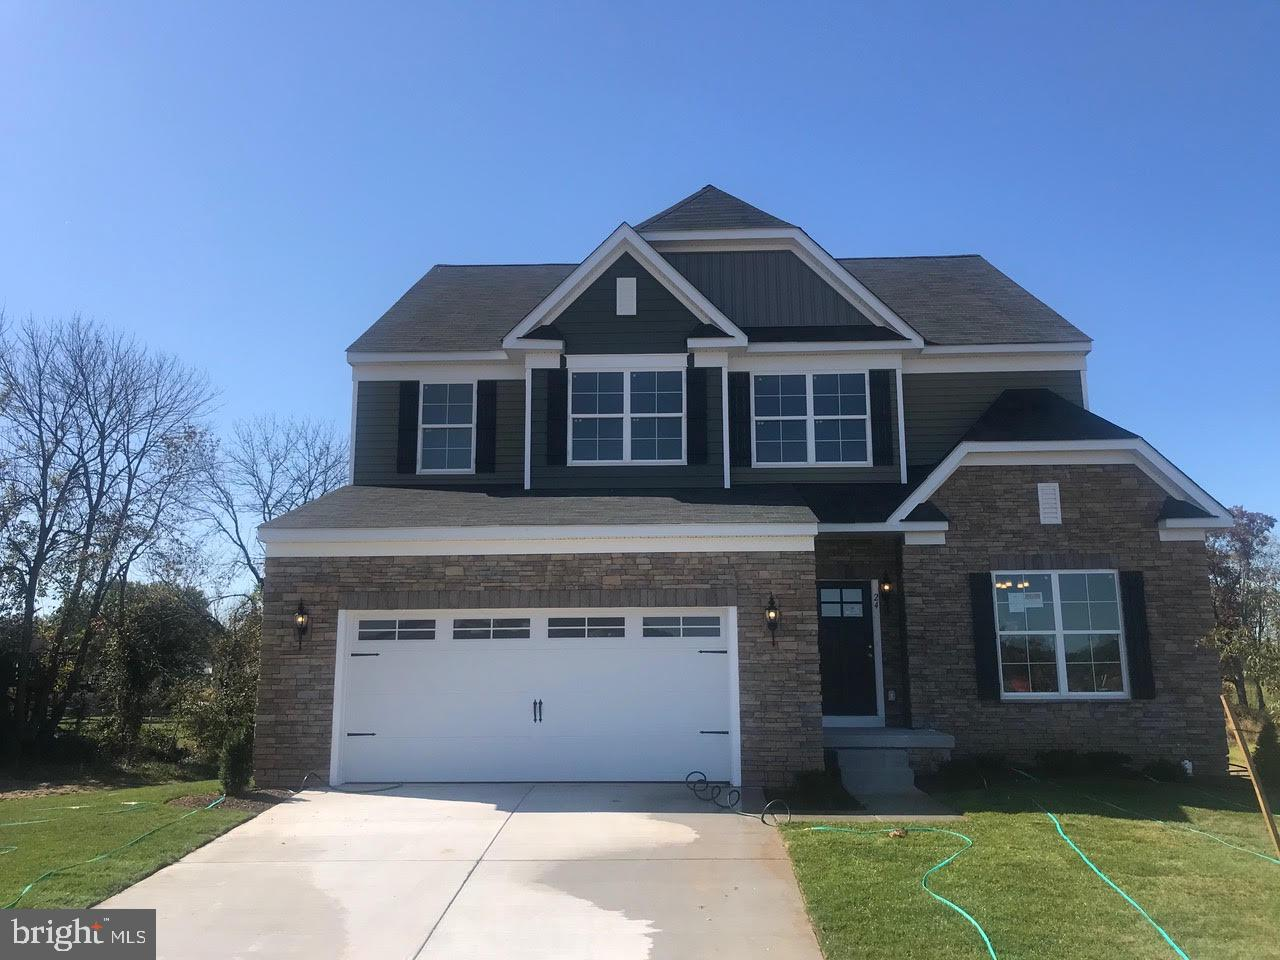 2718 TOWN VIEW CIRCLE, NEW WINDSOR, MD 21776